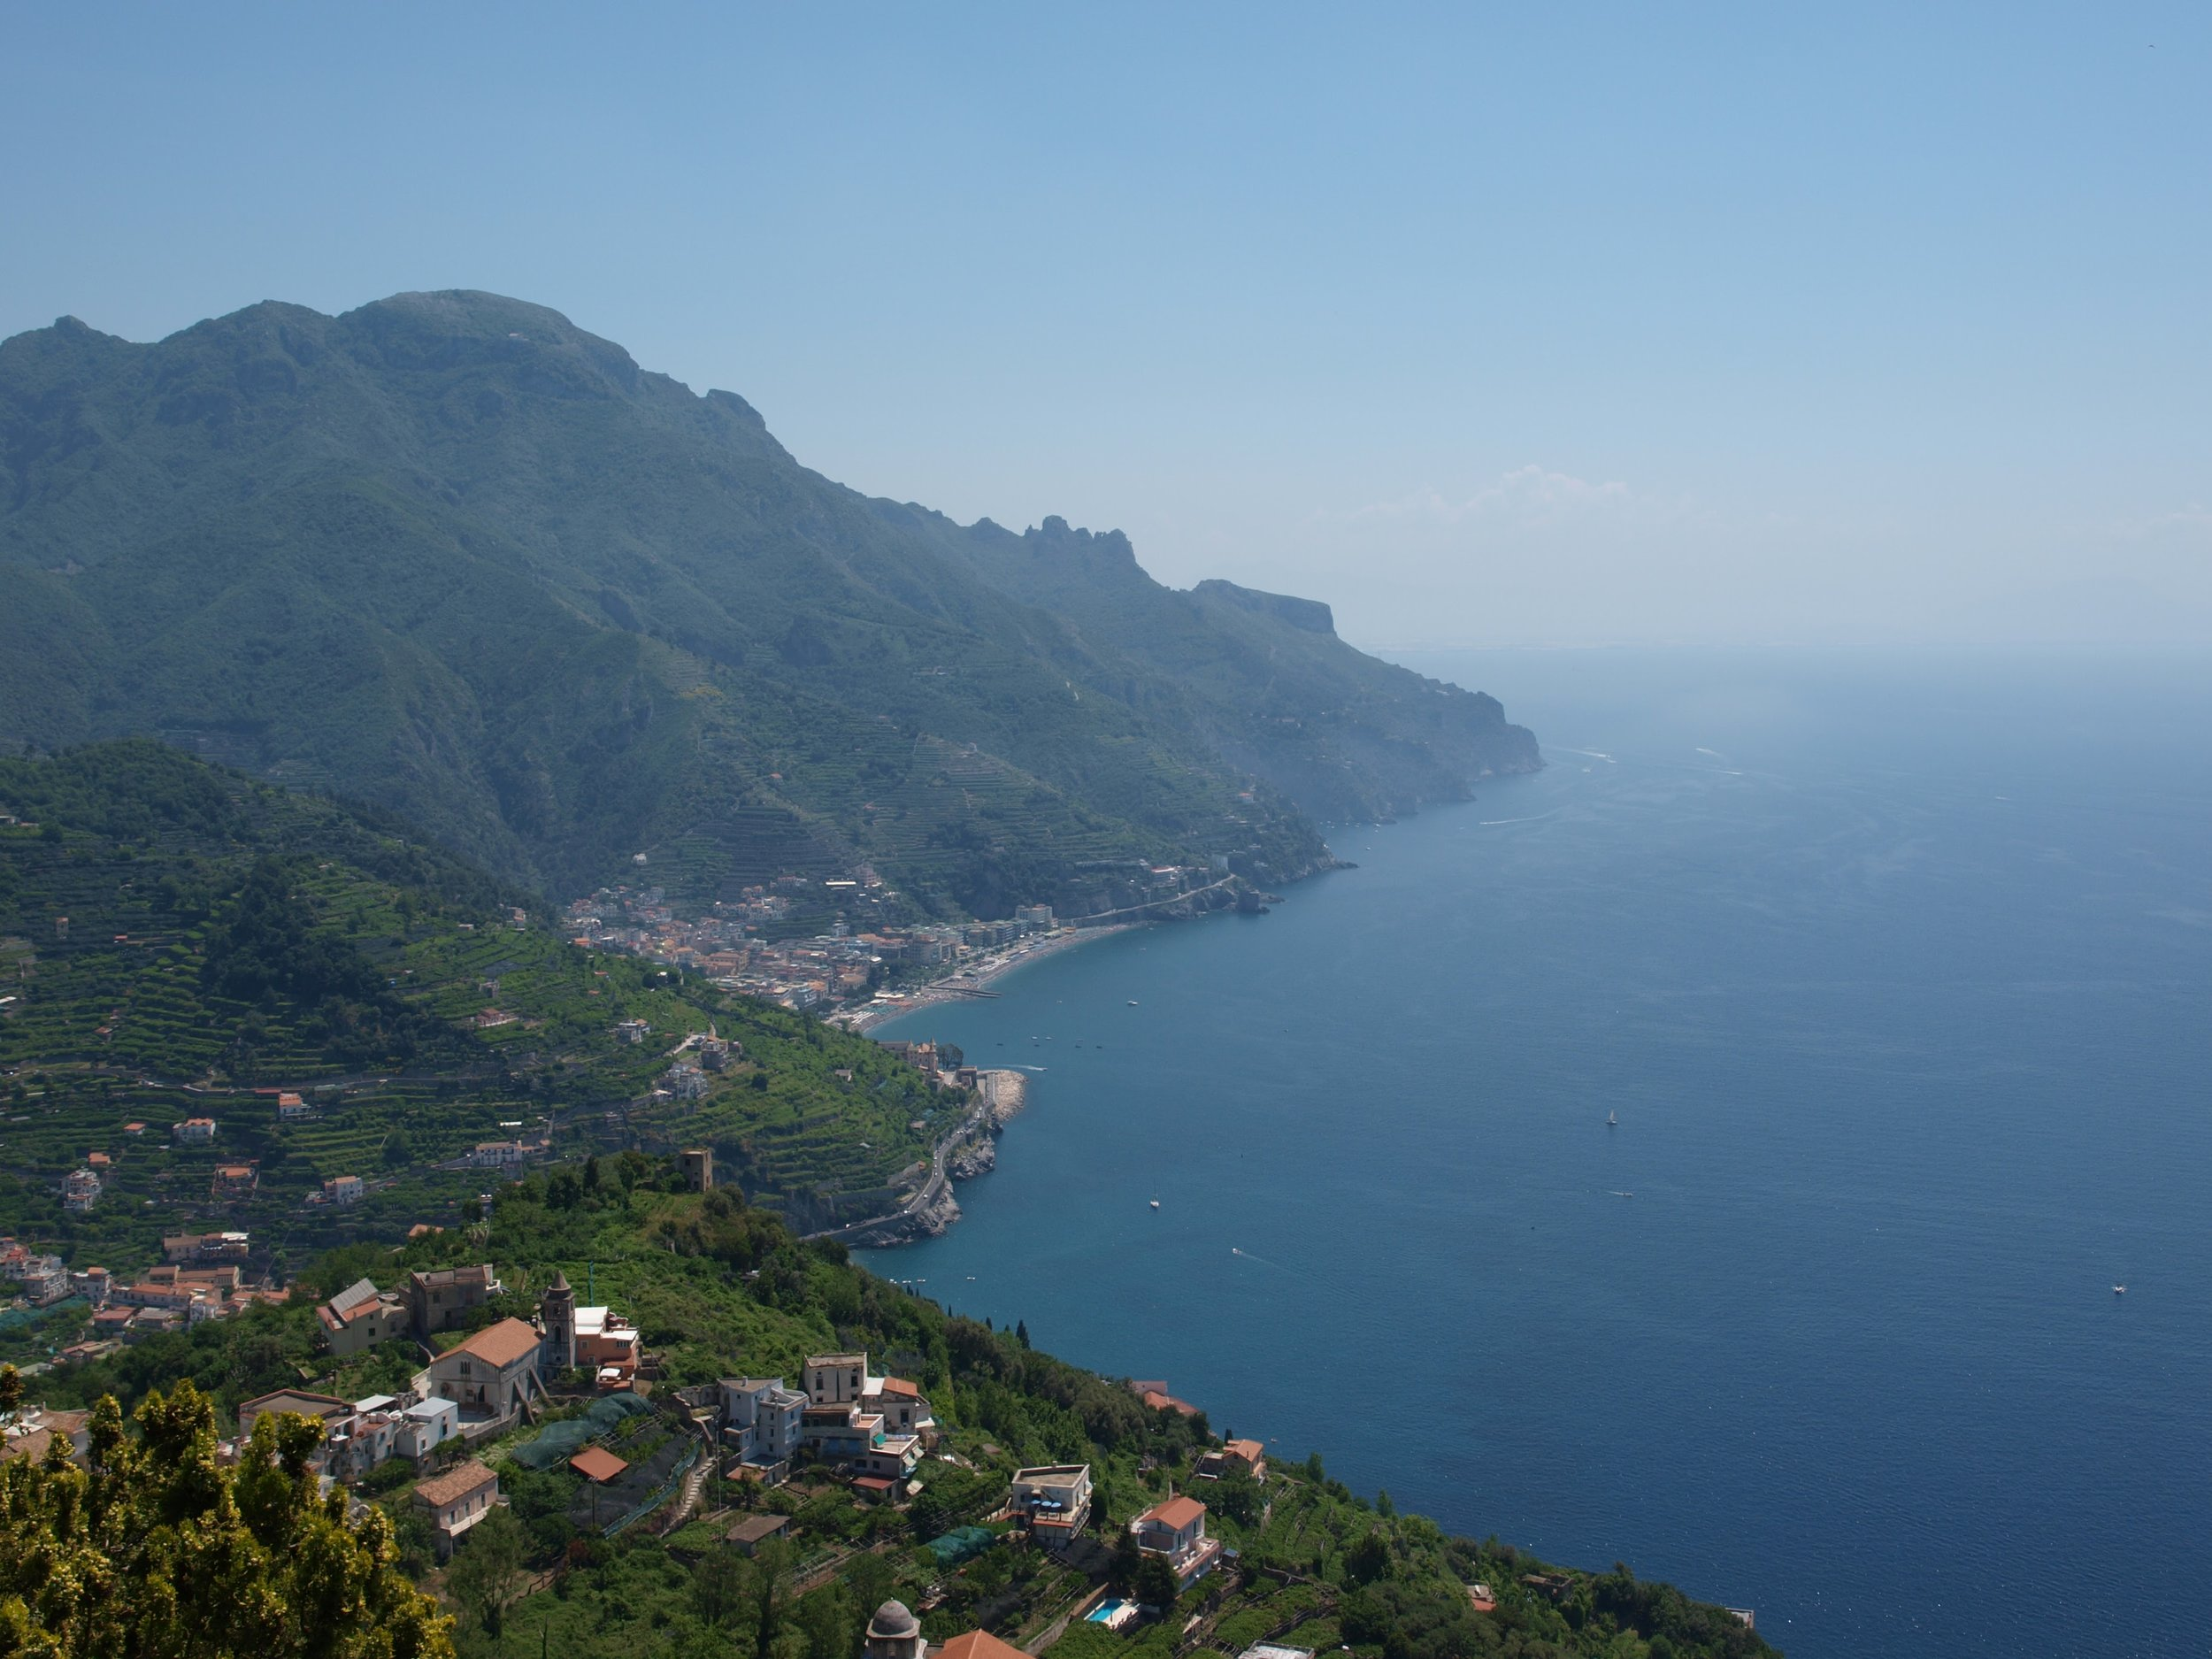 No shortage of gorgeous views from the Amalfi Coast